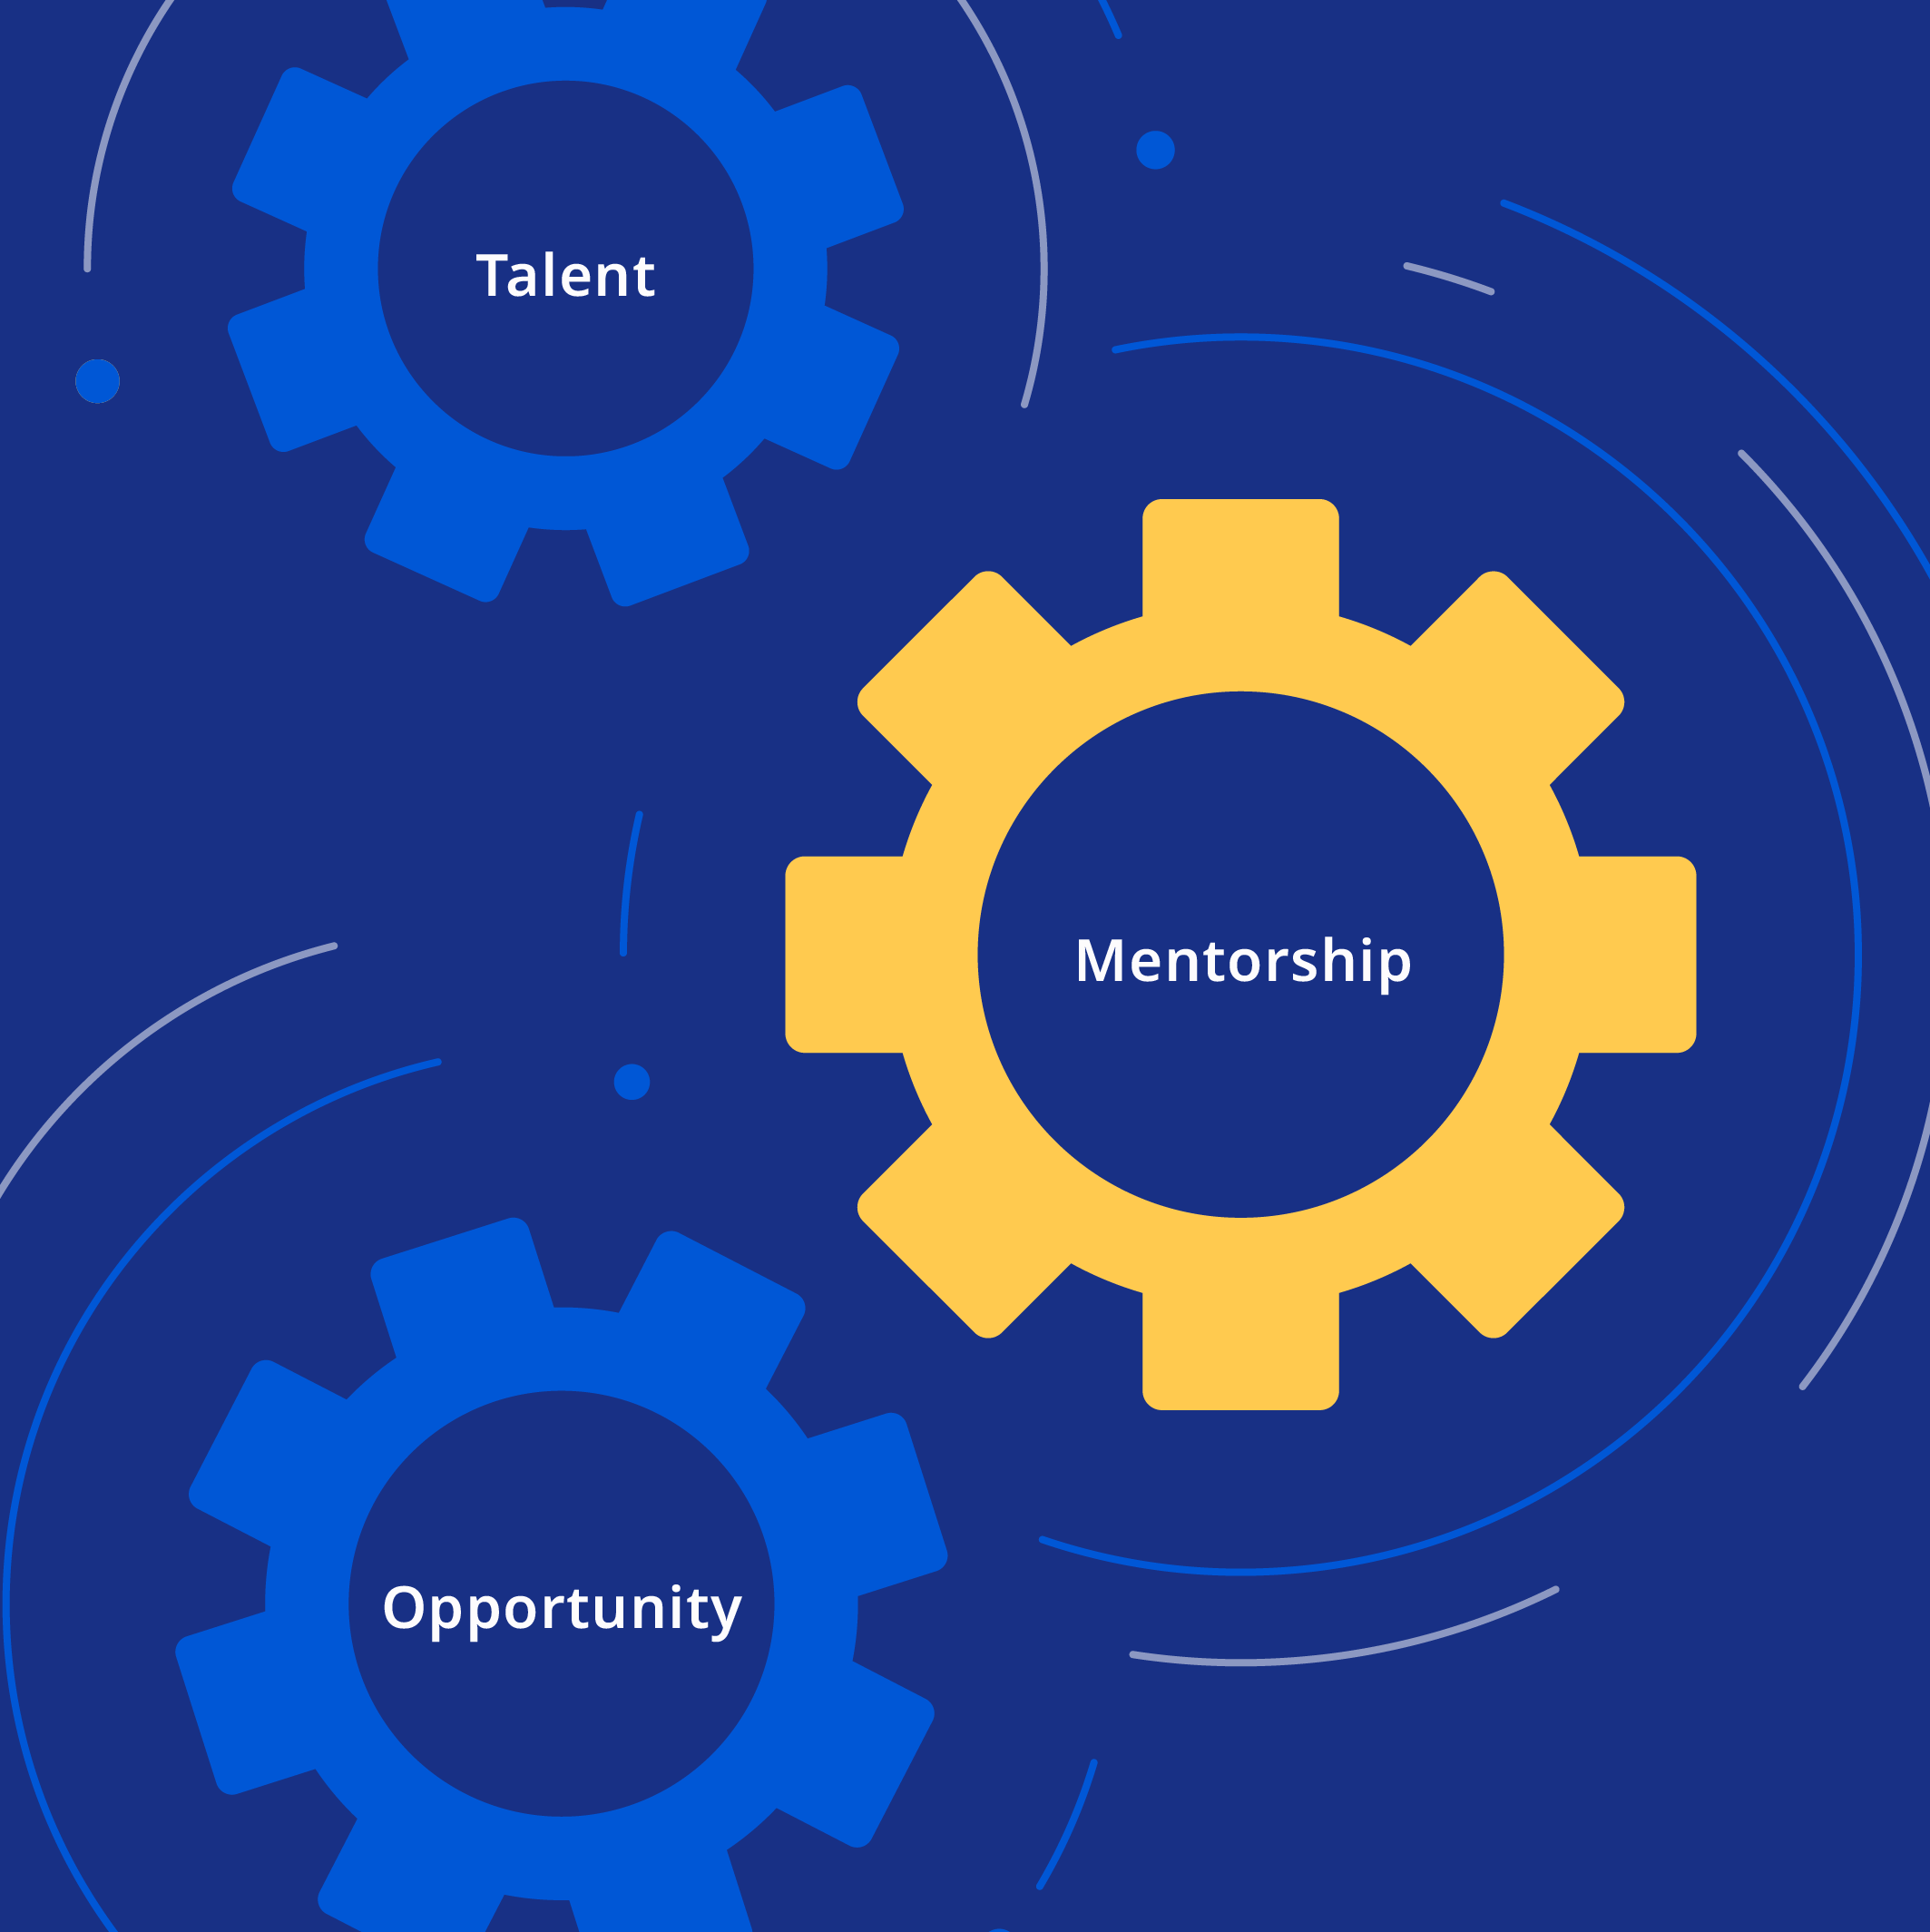 Illustration showing 3 gears working together, displaying the text Talent, Mentorship, and Opportunity.